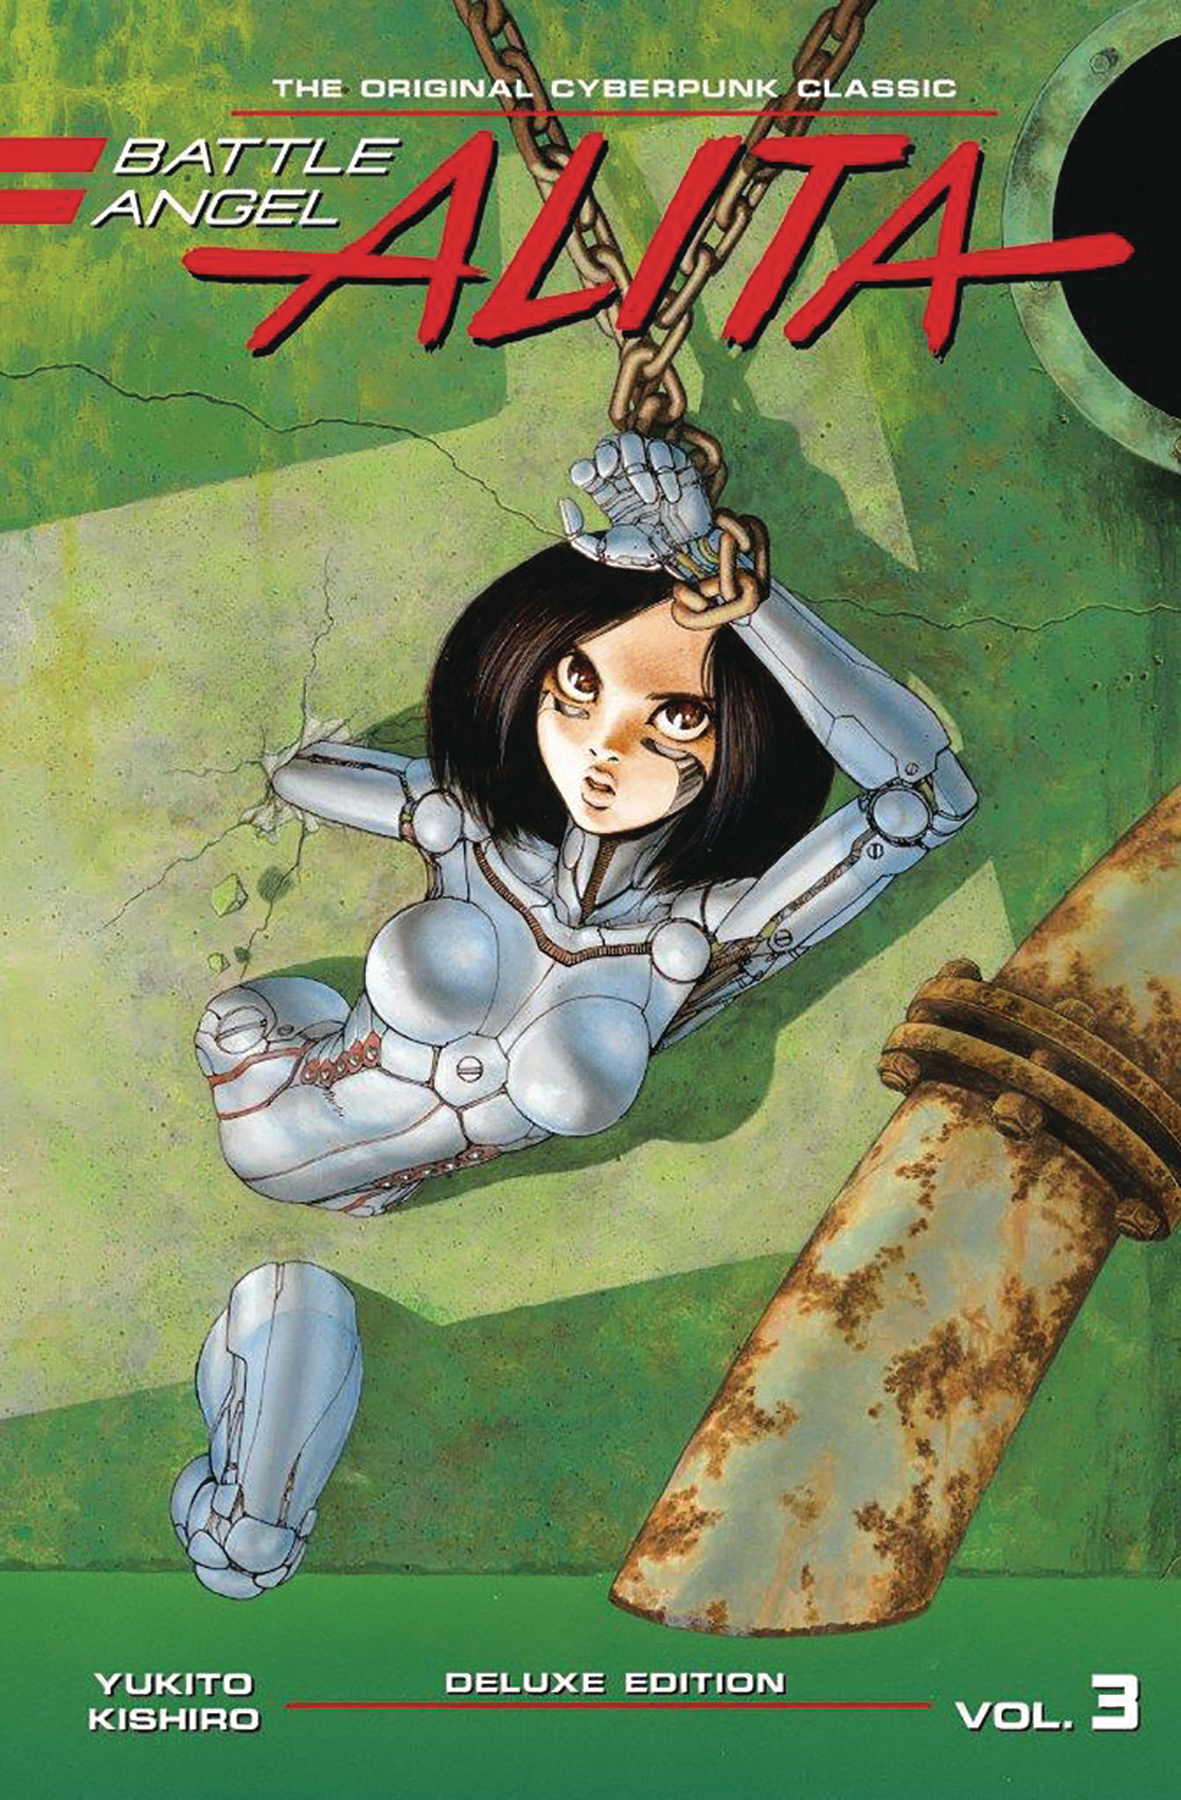 BATTLE ANGEL ALITA DELUXE ED HC VOL 03 (JAN181760)